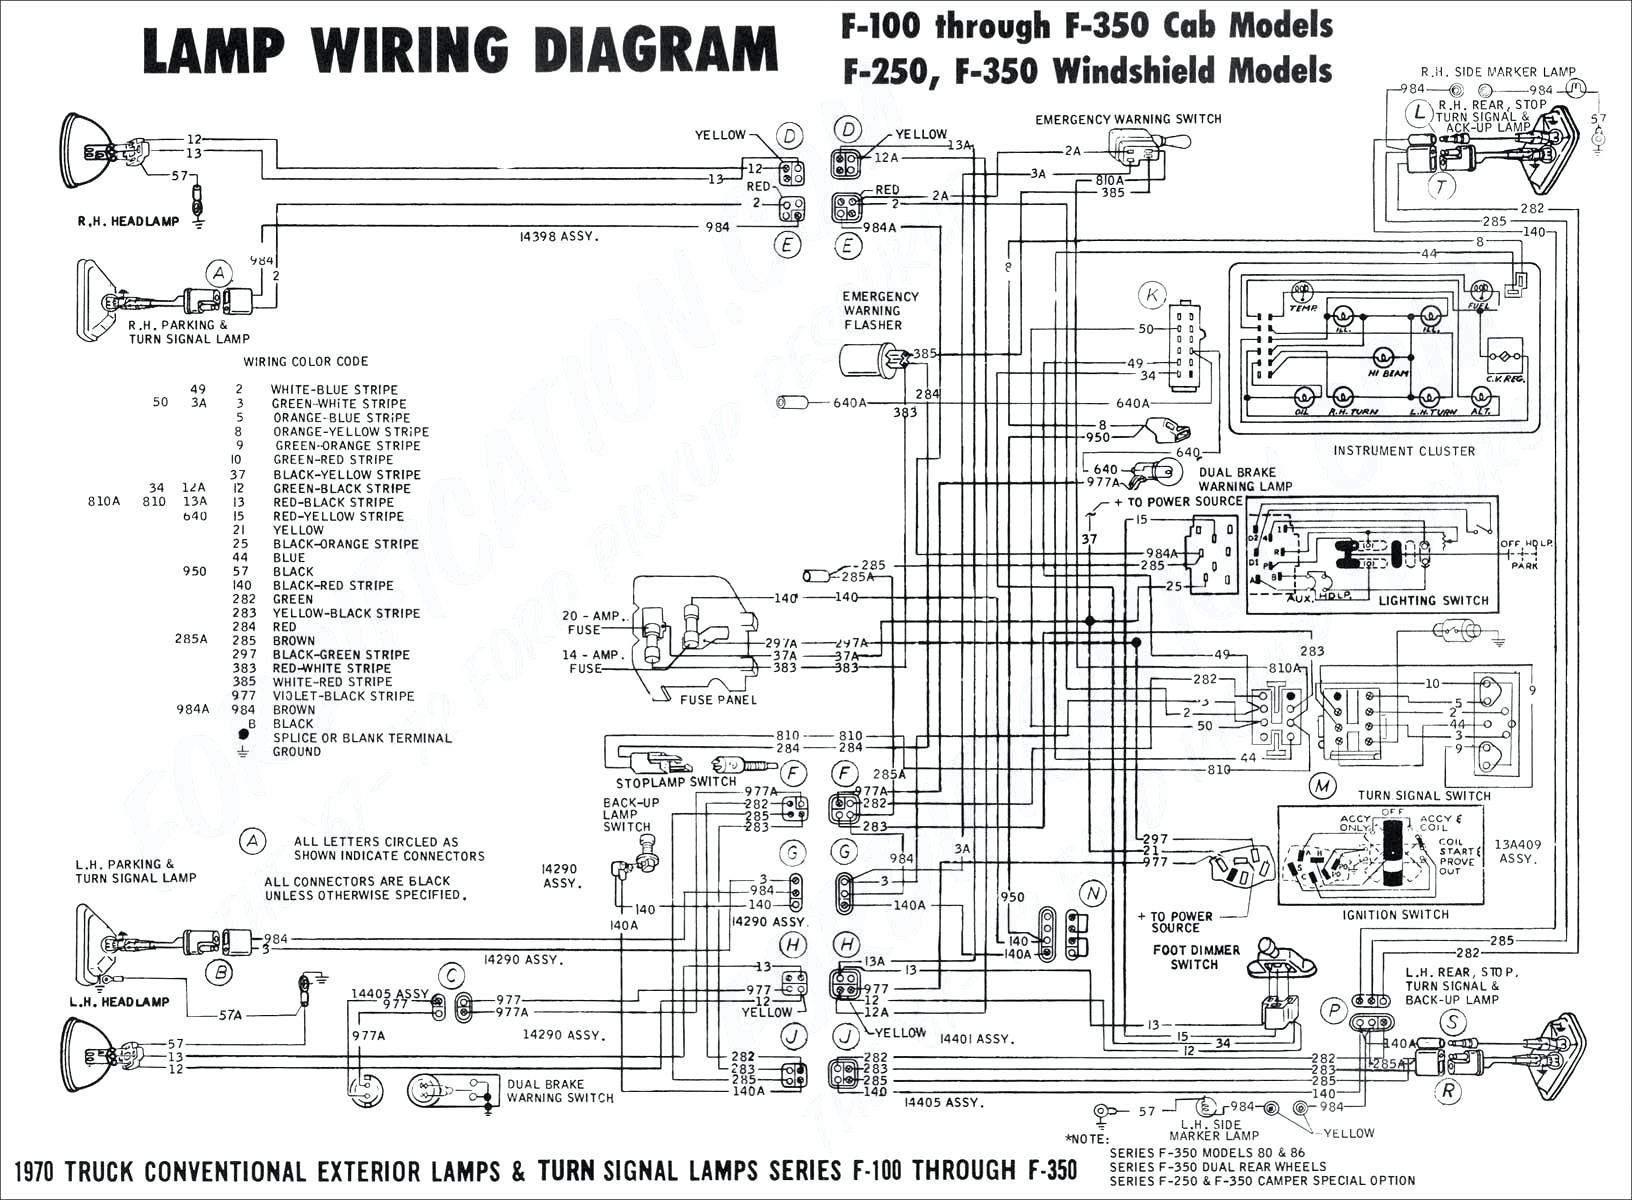 E Trailer Wiring Diagram 94 F350 Wiring Diagrams Layout Wiring Diagrams • Of E Trailer Wiring Diagram